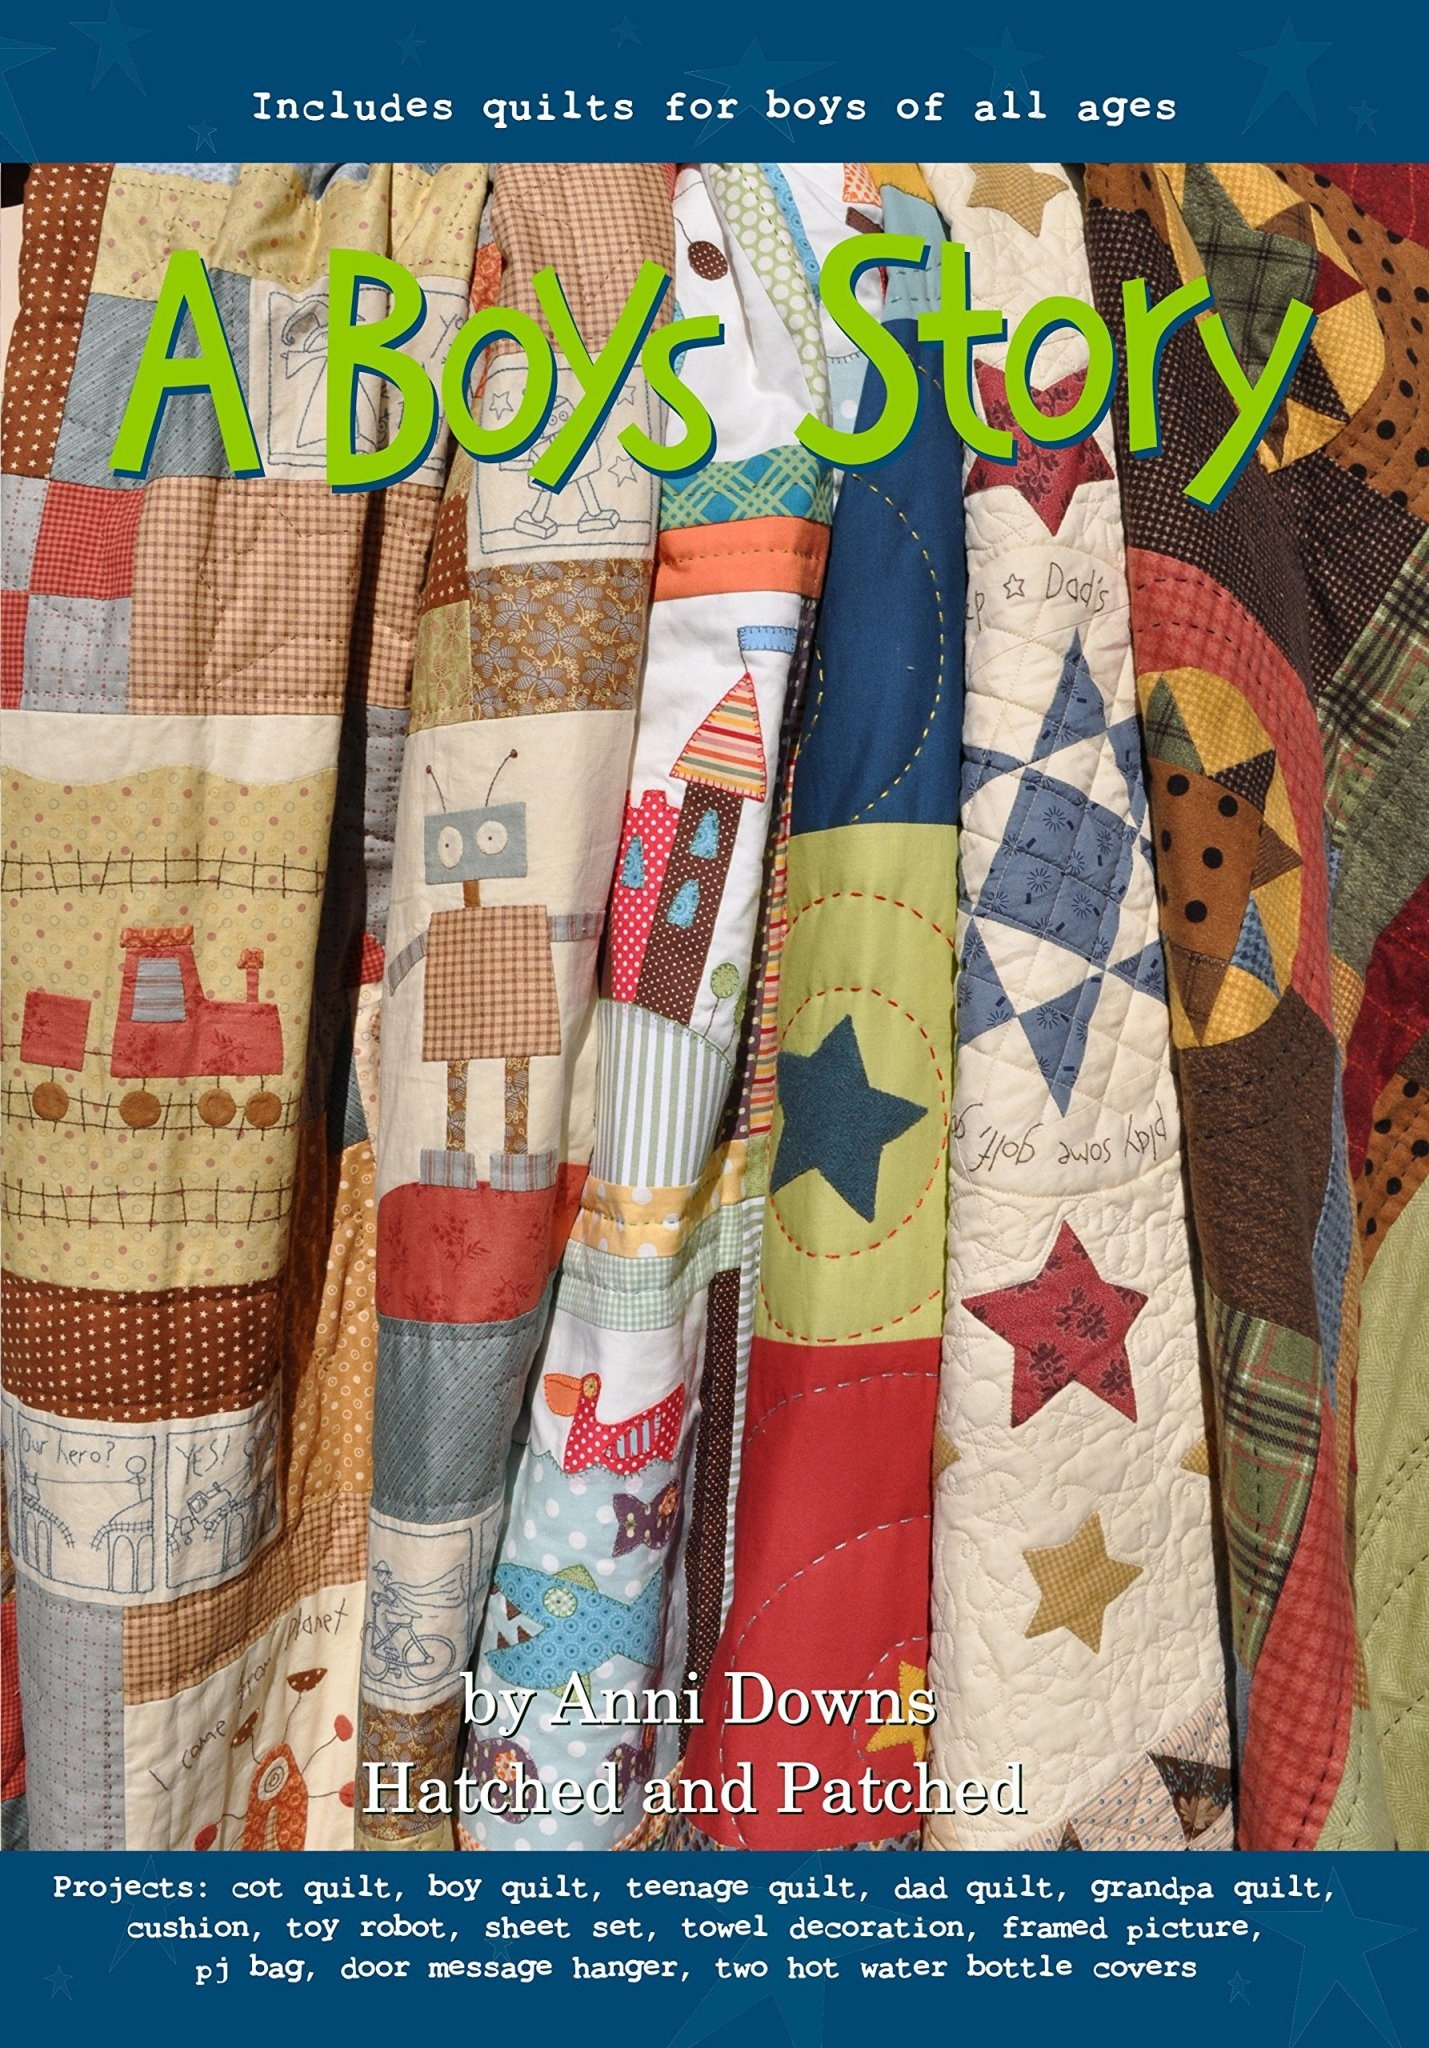 Hatched And Patched A Boys Story by Anni Downs